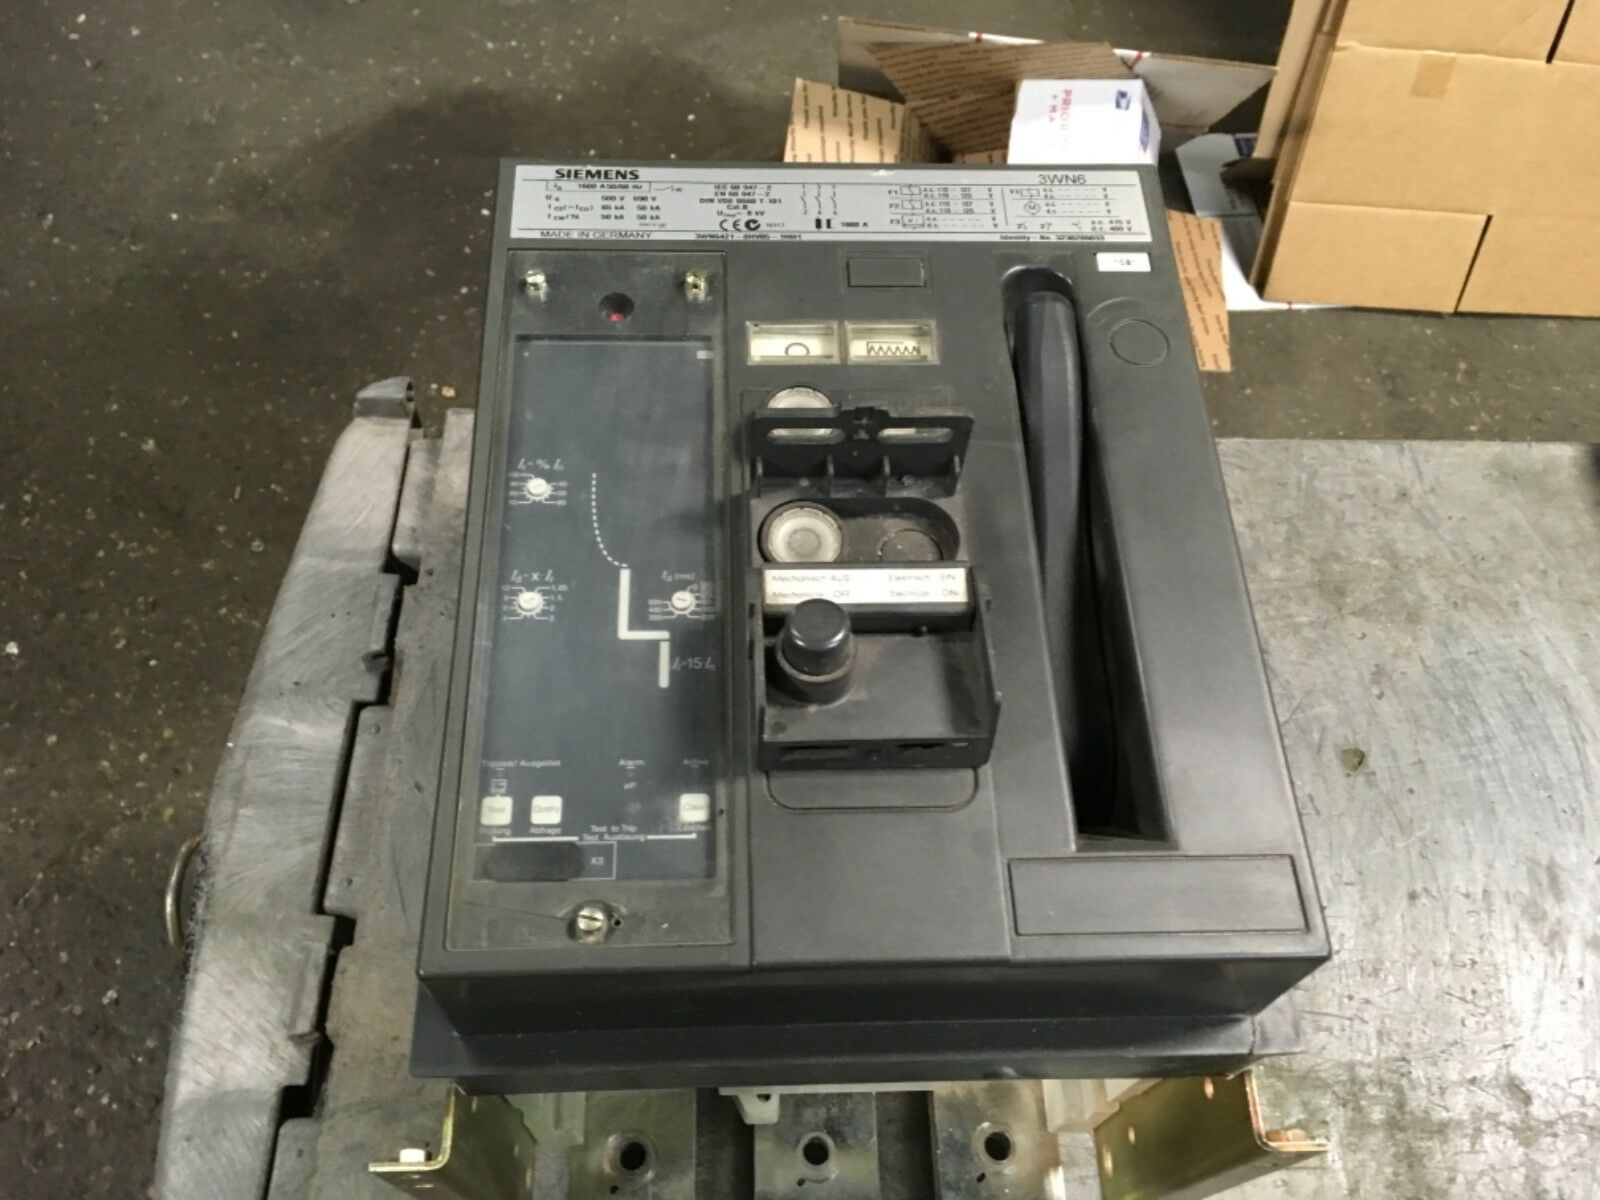 Used Circuit Breakers Ite E43b060 60 Amp 3 Pole Breaker Siemens 3wn6 3wn6421 0hv05 1hh1 Fixed Mounted Small Norton Secured Powered By Verisign